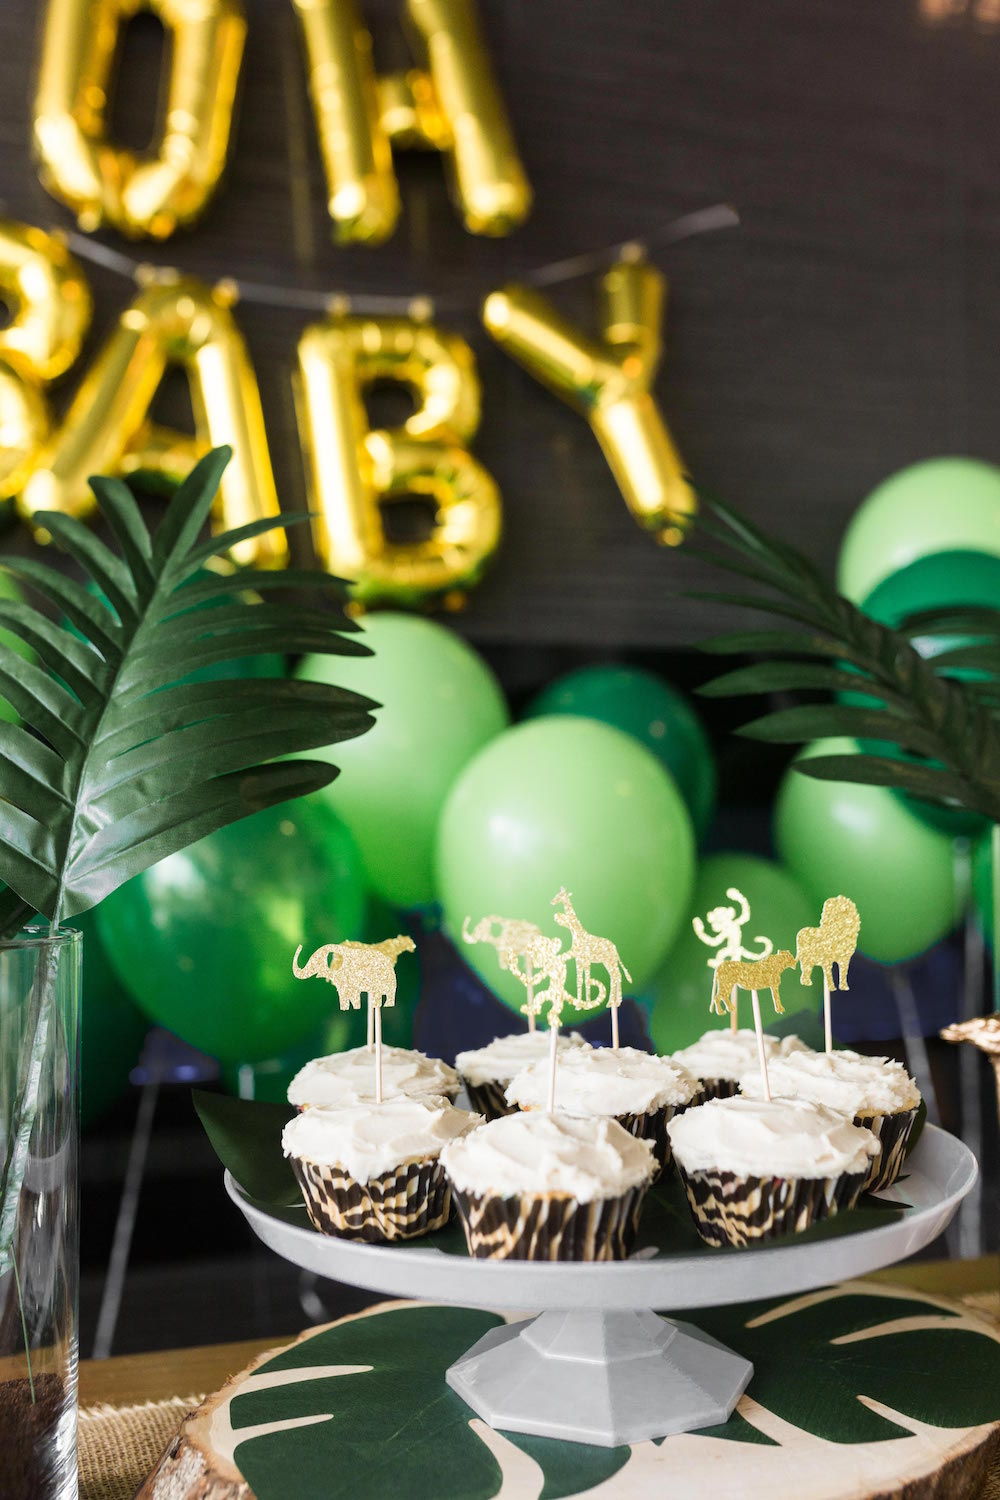 Safari Baby Shower cupcakes with animal toppers | Black Twine